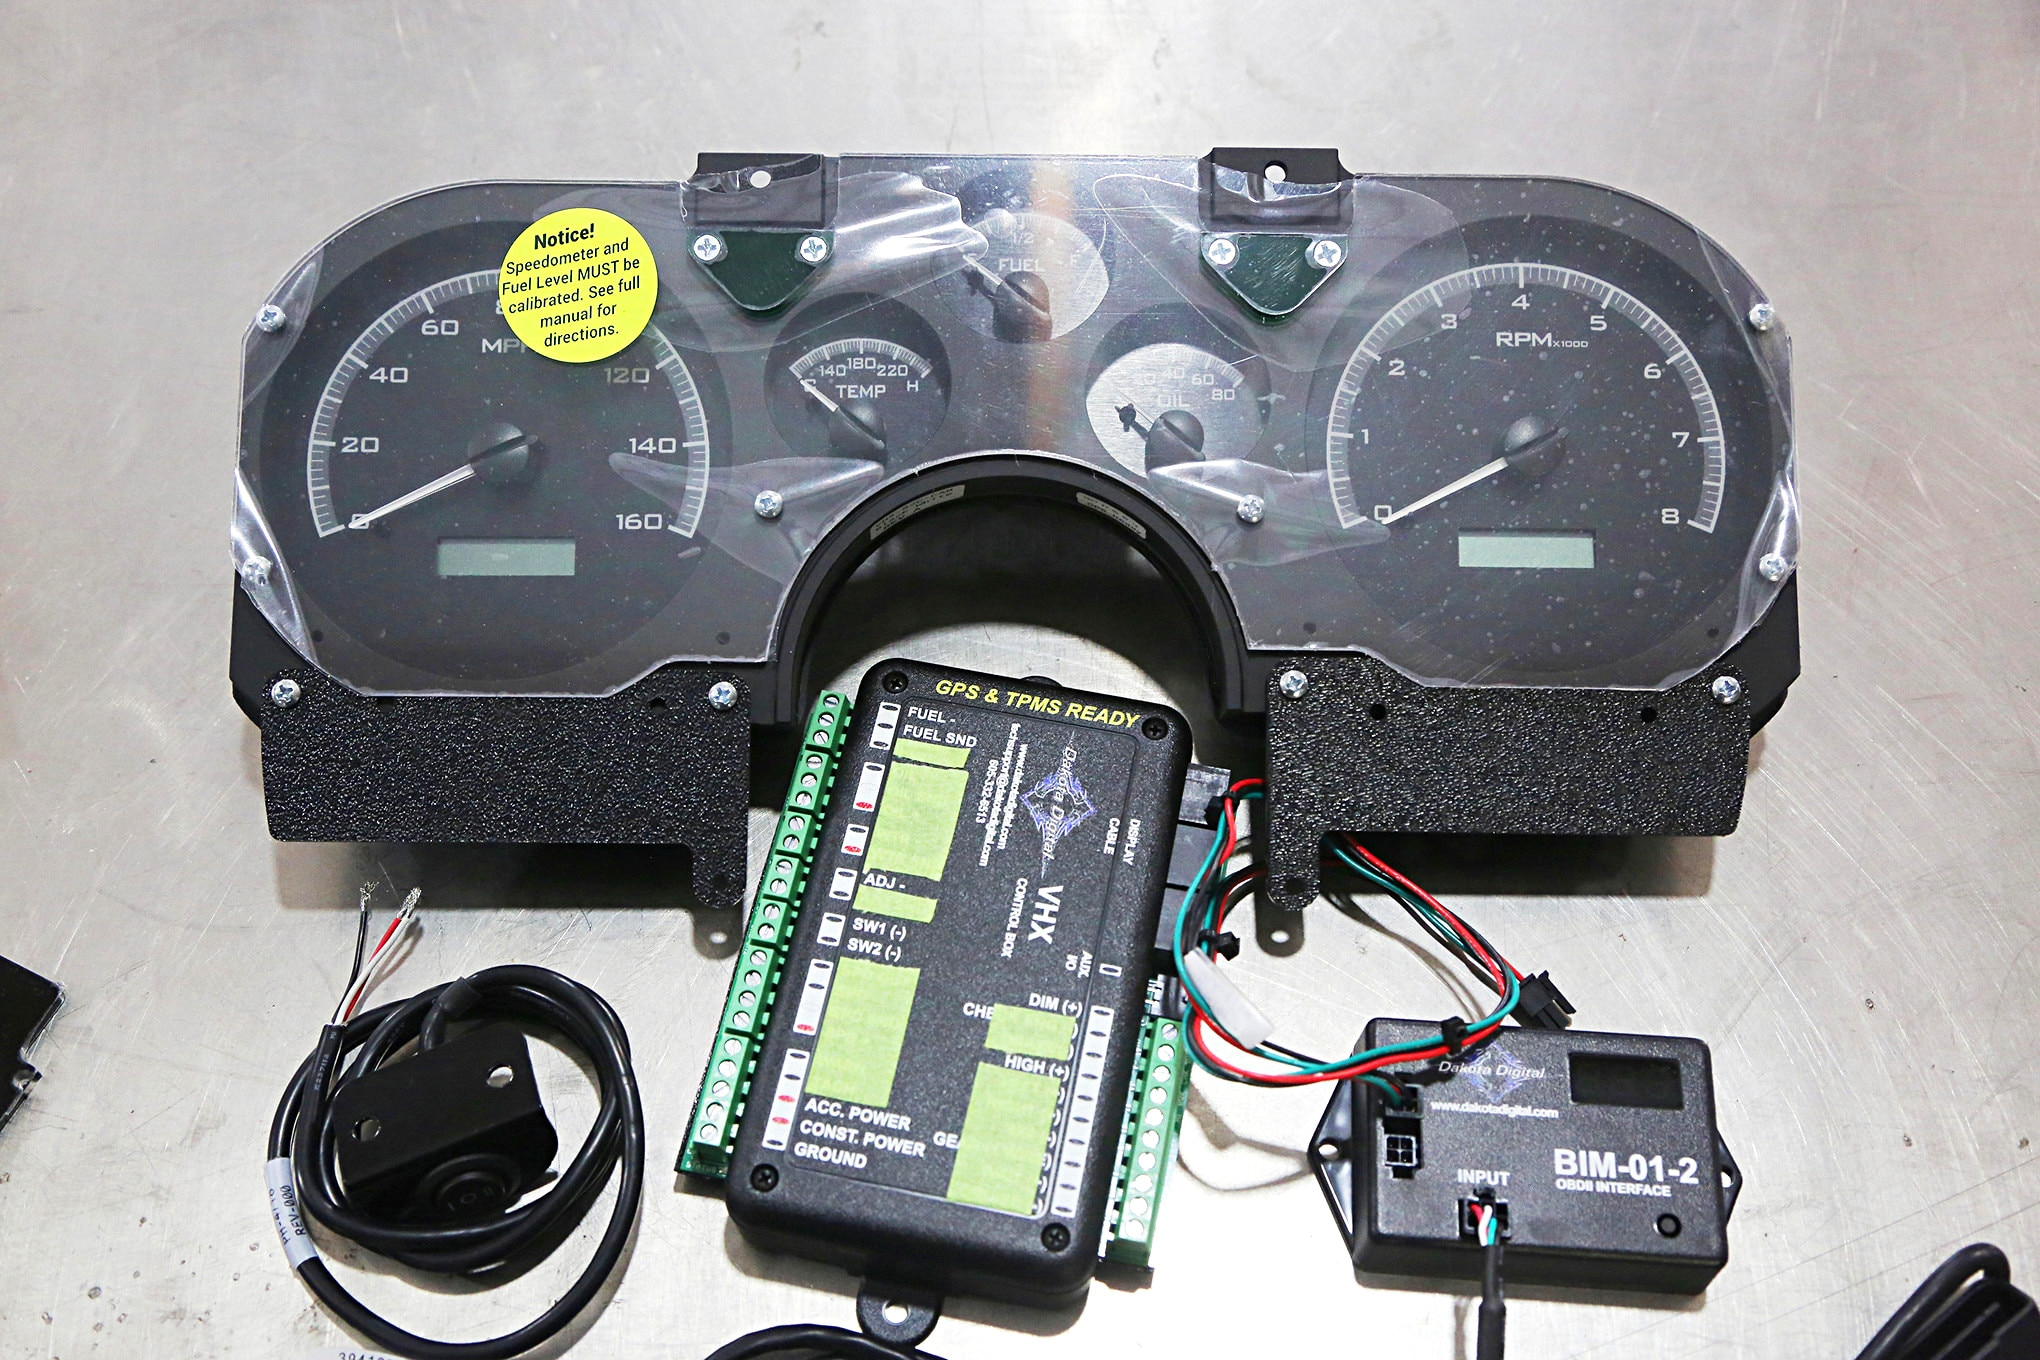 hight resolution of vhx instrument cluster removes barrier for lt1 swaps hot rod network super pro tachometer wiring diagram